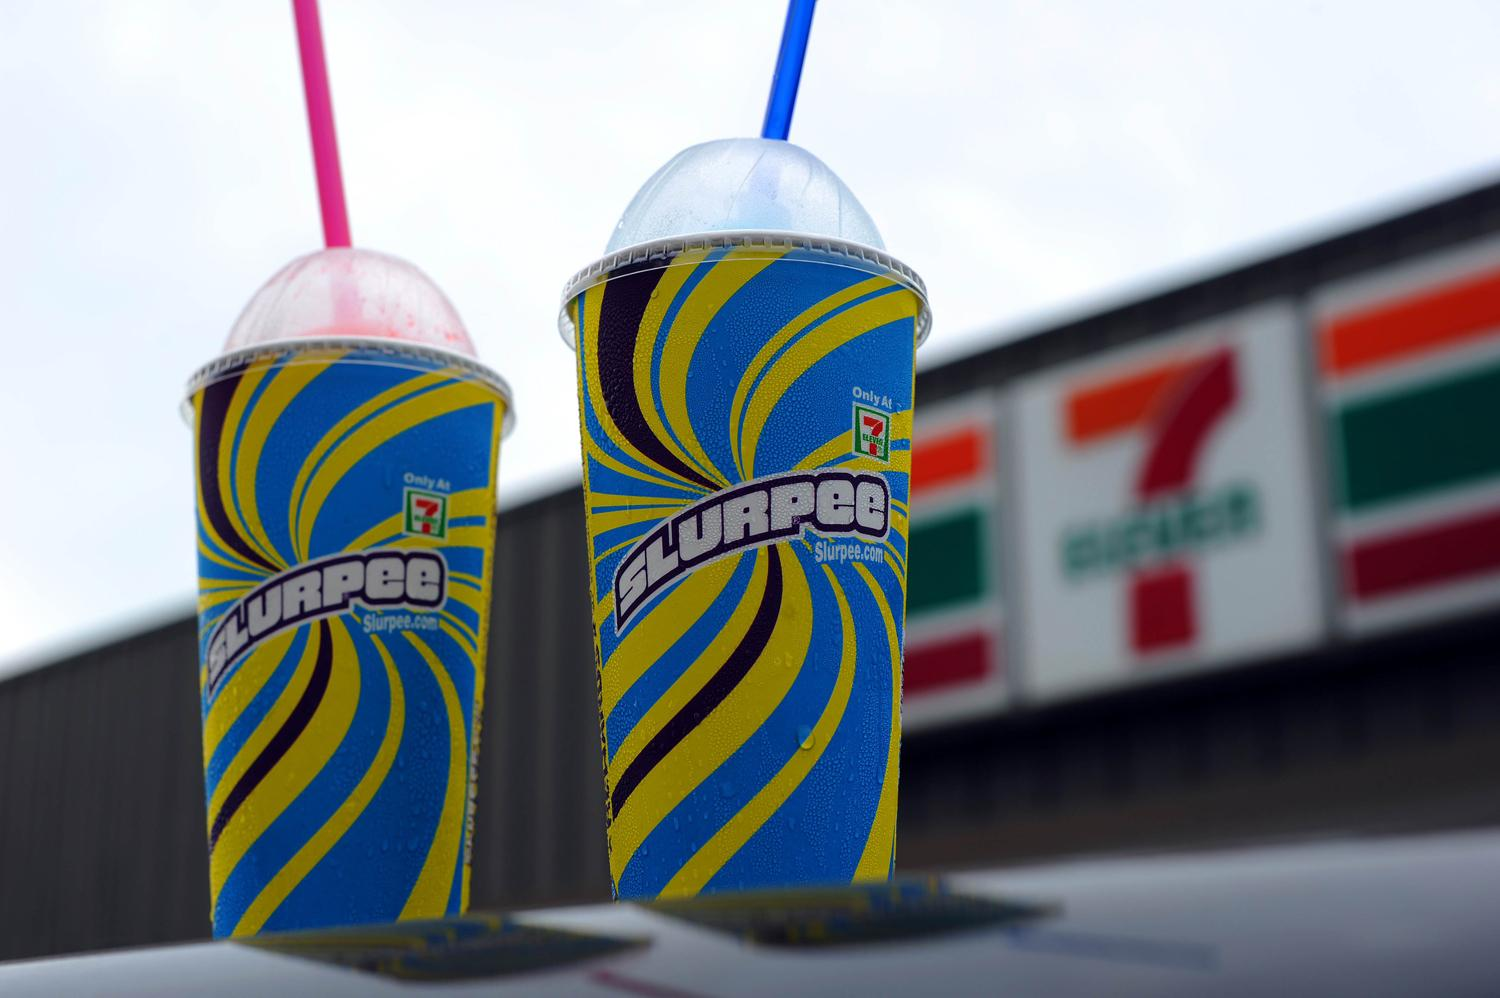 cover-slurpees-1531257244106-1531257246784.jpg